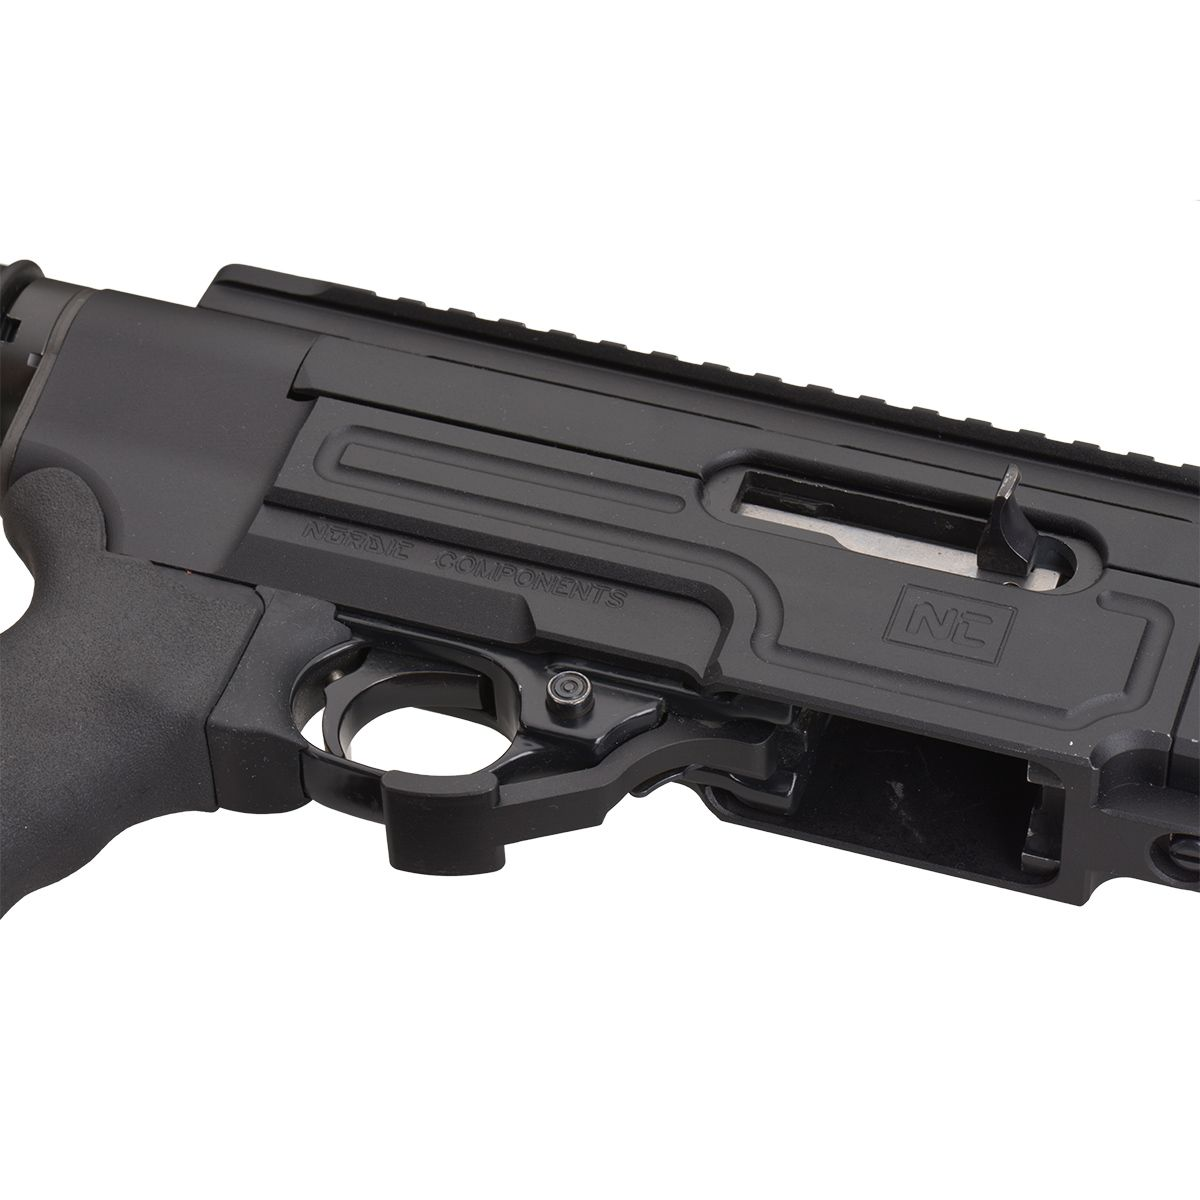 Accessories and BX magazines for your Ruger 1022